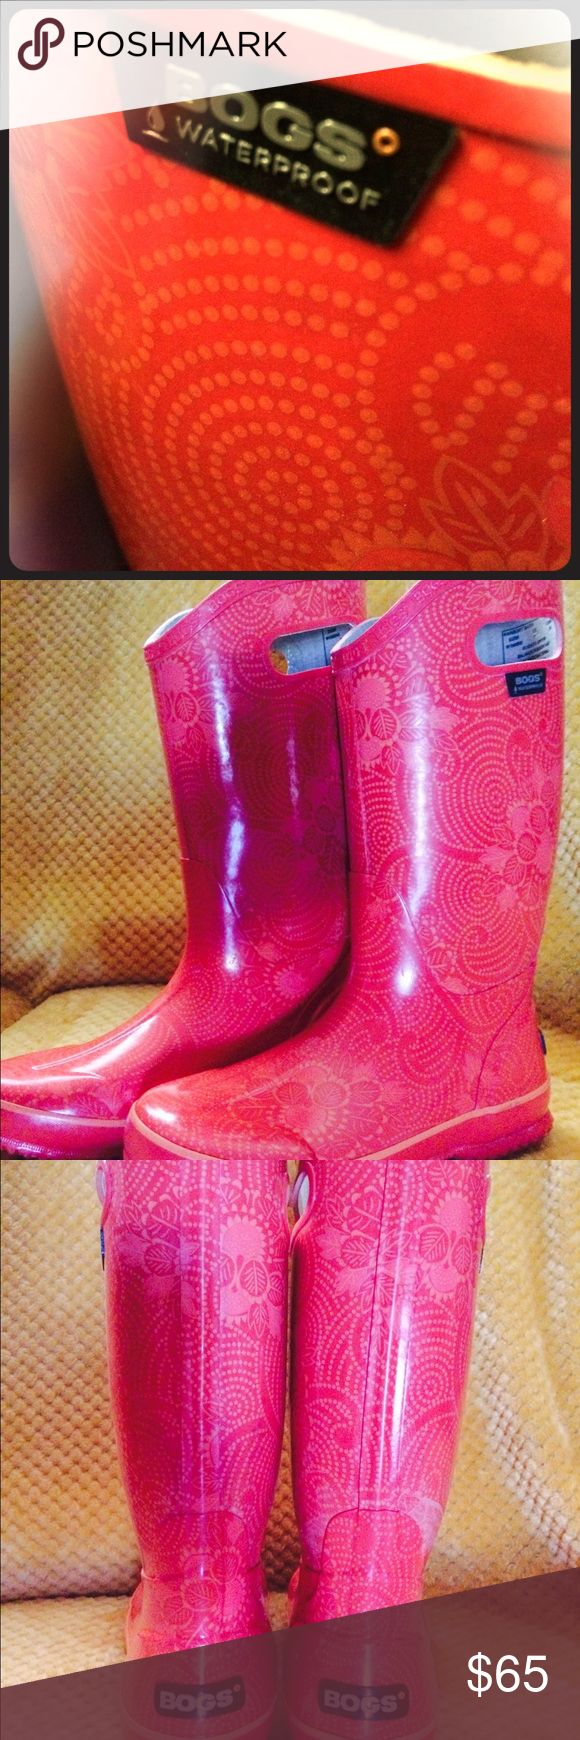 Women's Bogs rain boots Size 7 Bogs women rain boots . Warn handful of times when I lived in OR no need for them in AZ. Purchased for 80.00 Bogs Shoes Winter & Rain Boots